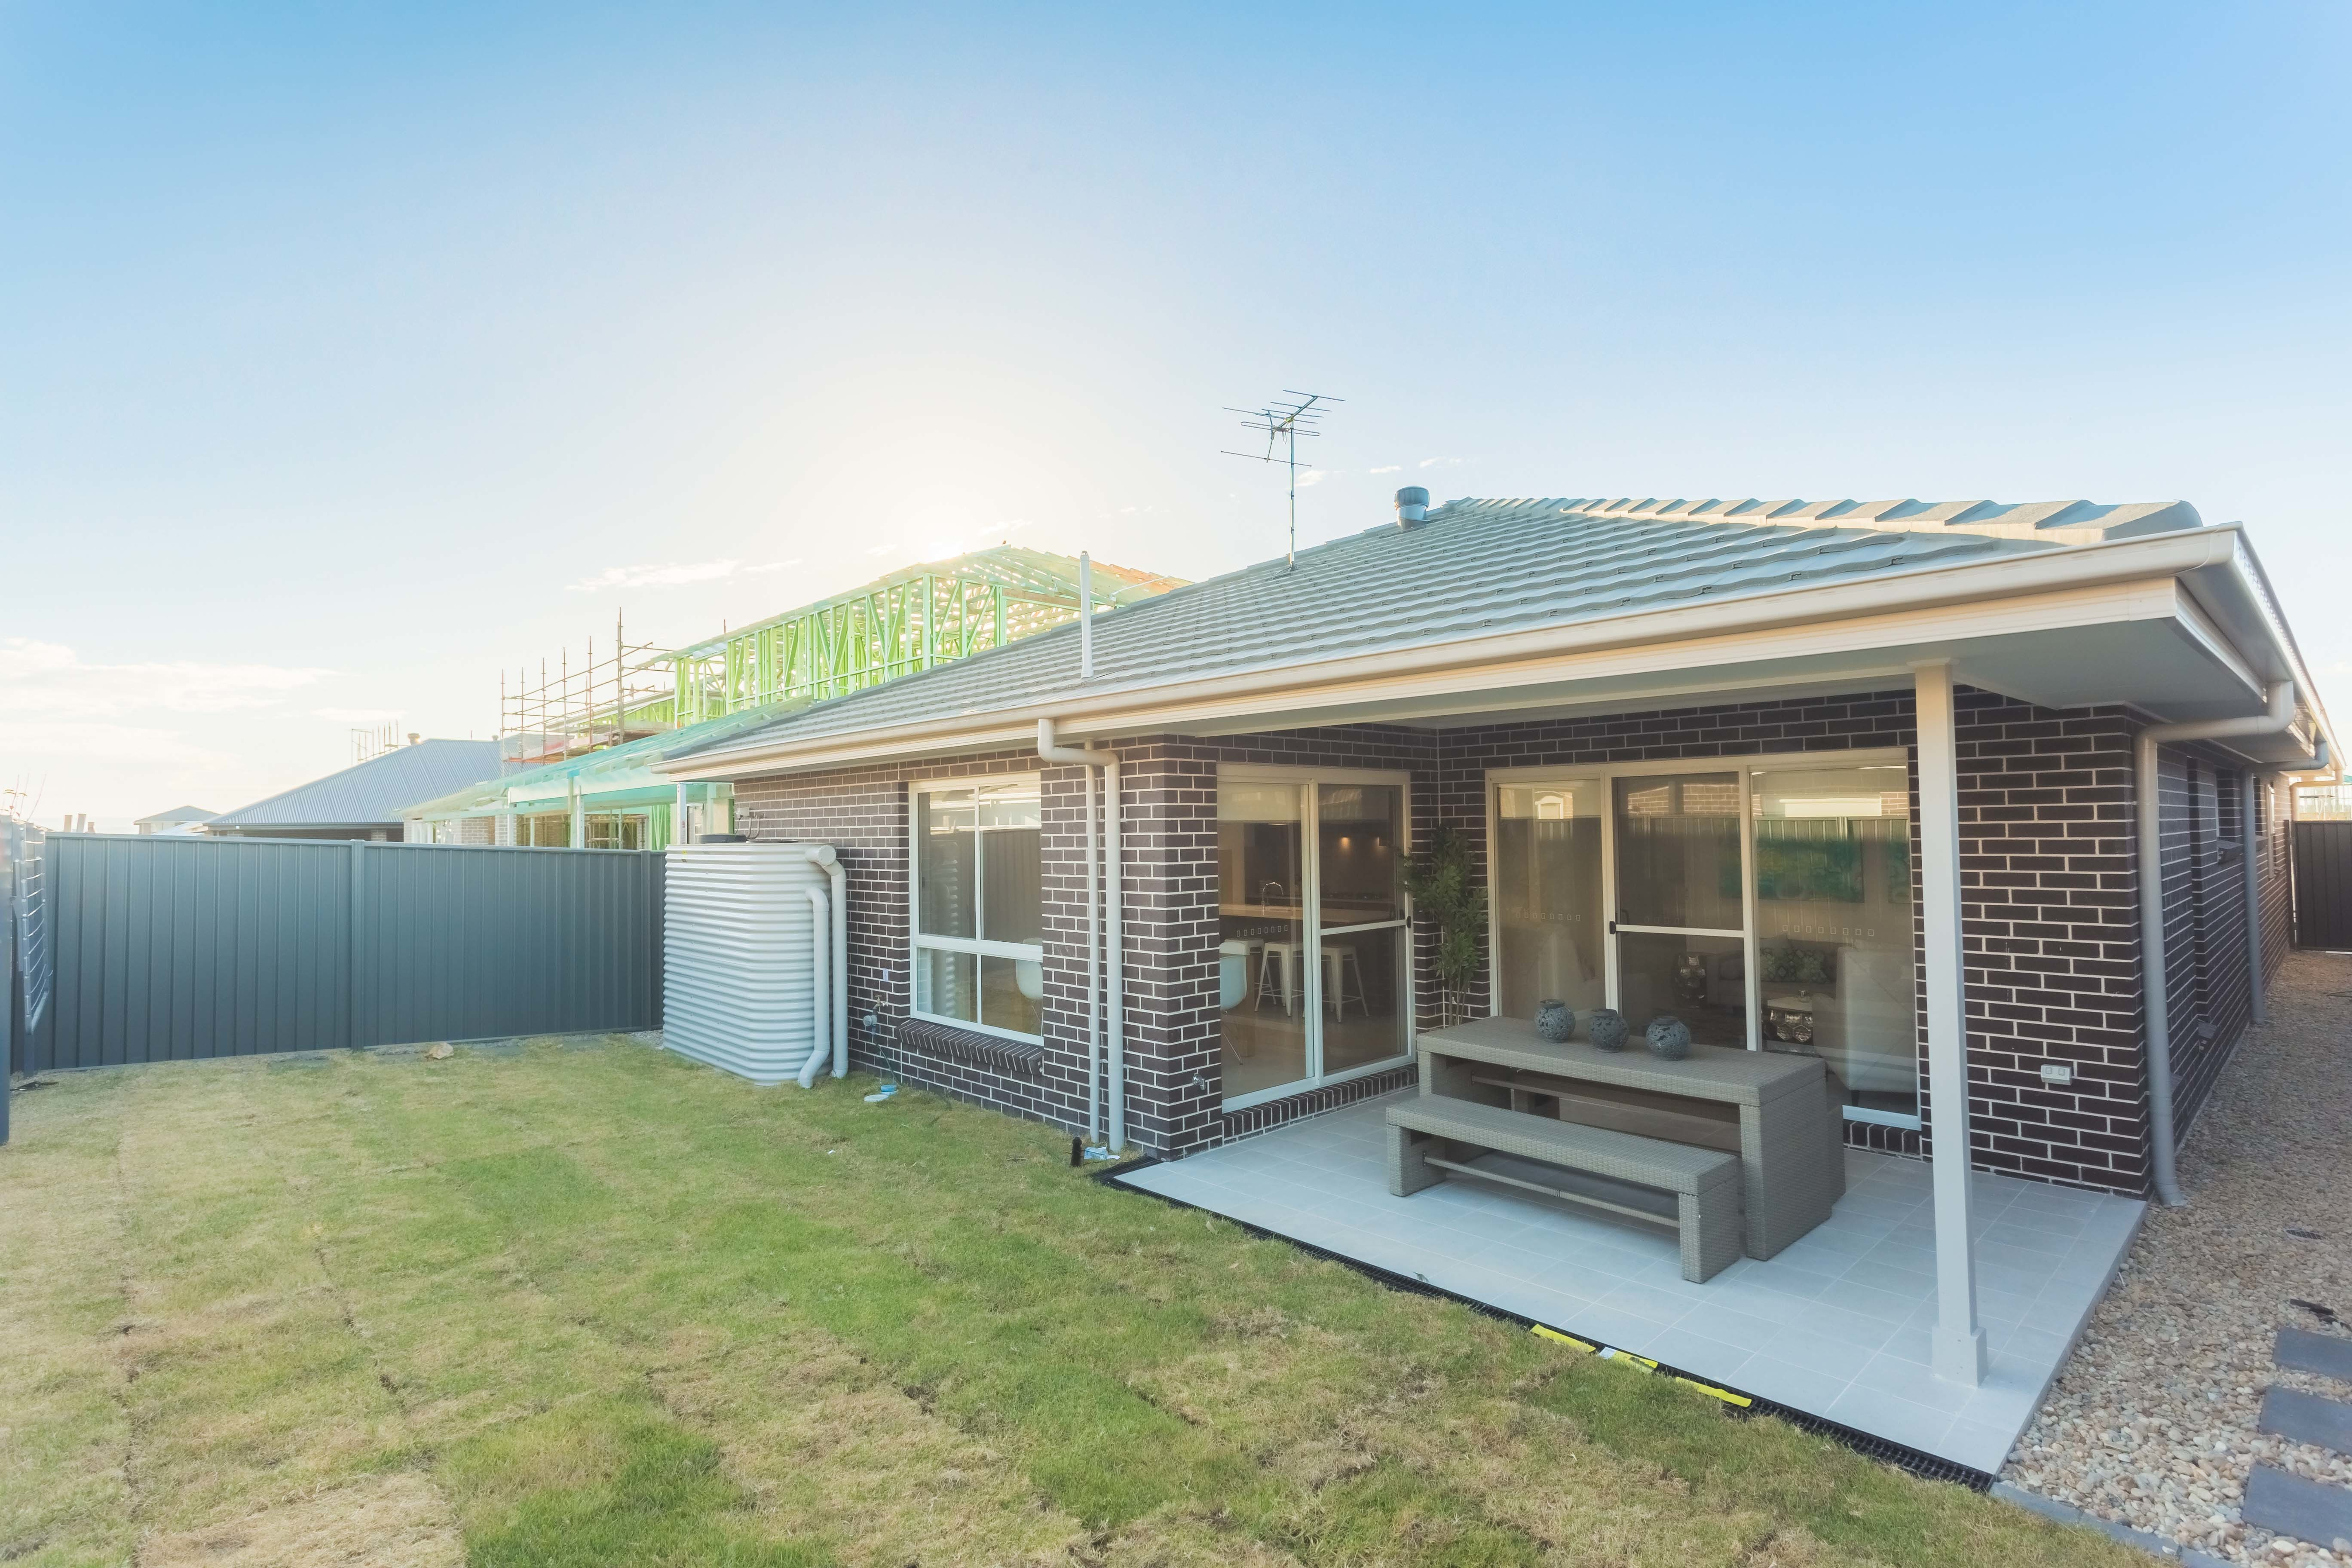 House for sale MARSDEN PARK NSW 2765 | myland.com.au